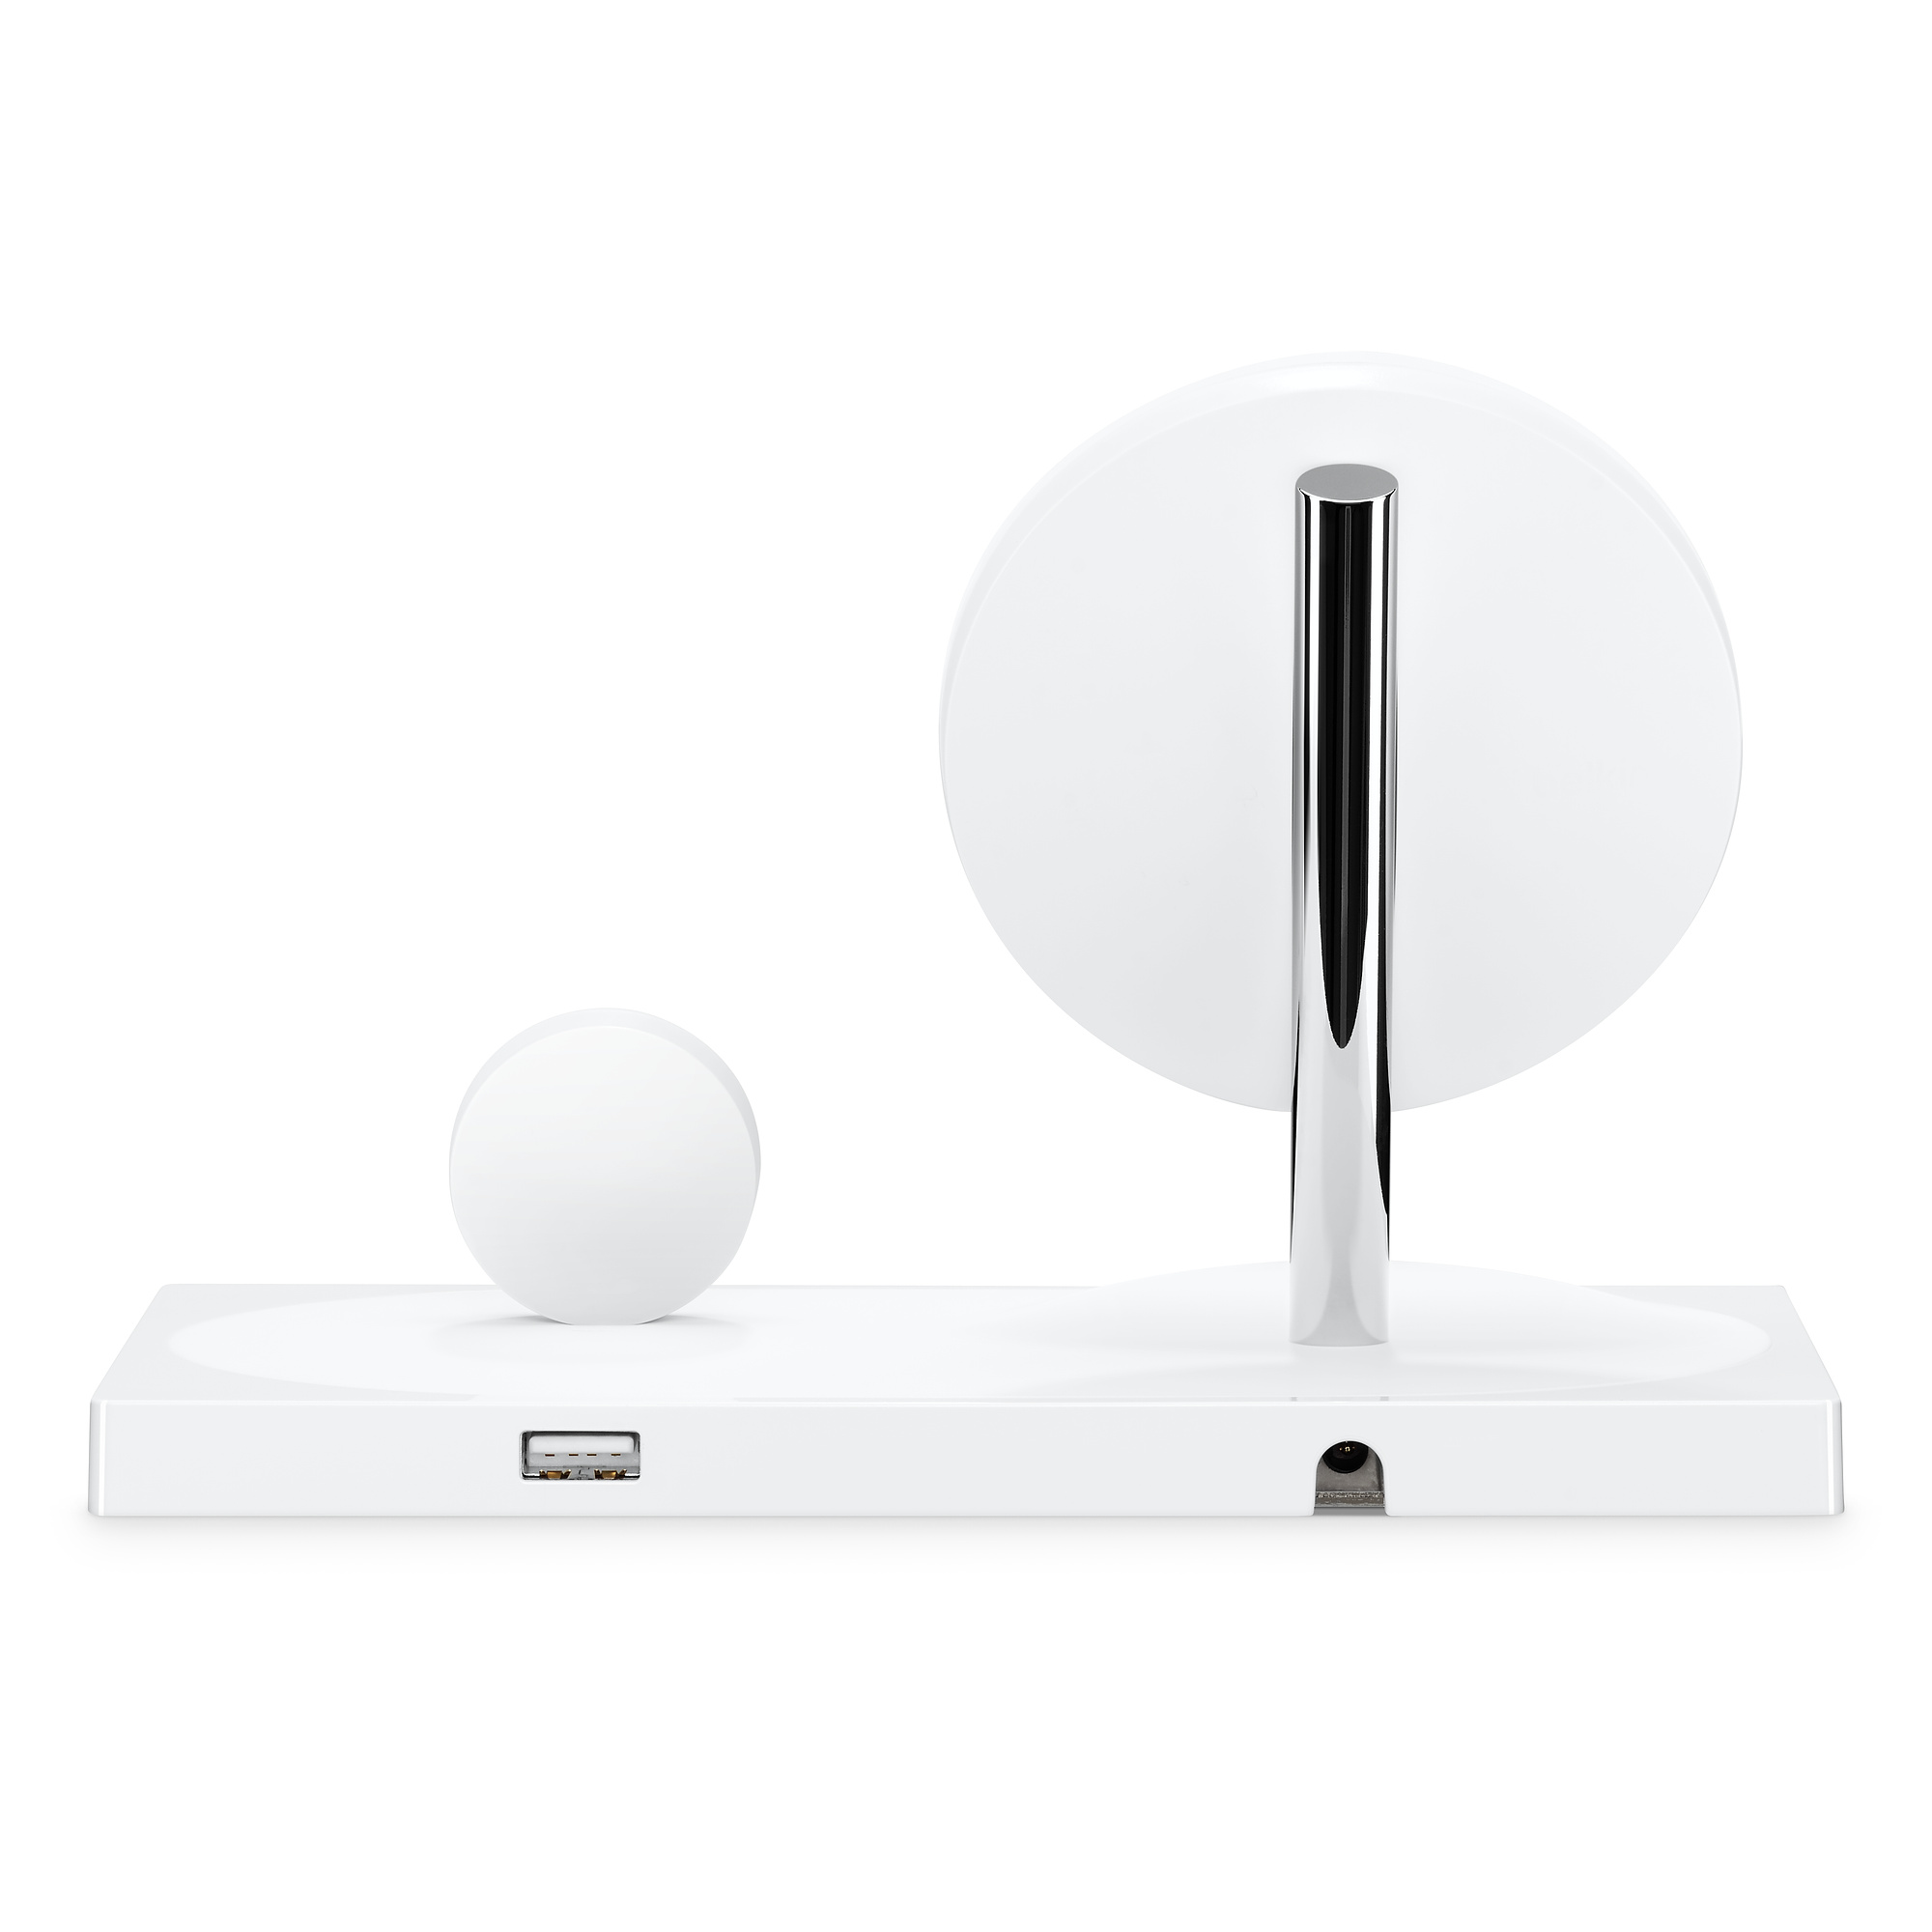 Achterkant van Belkin Boost Up dock voor iPhone en Apple Watch.